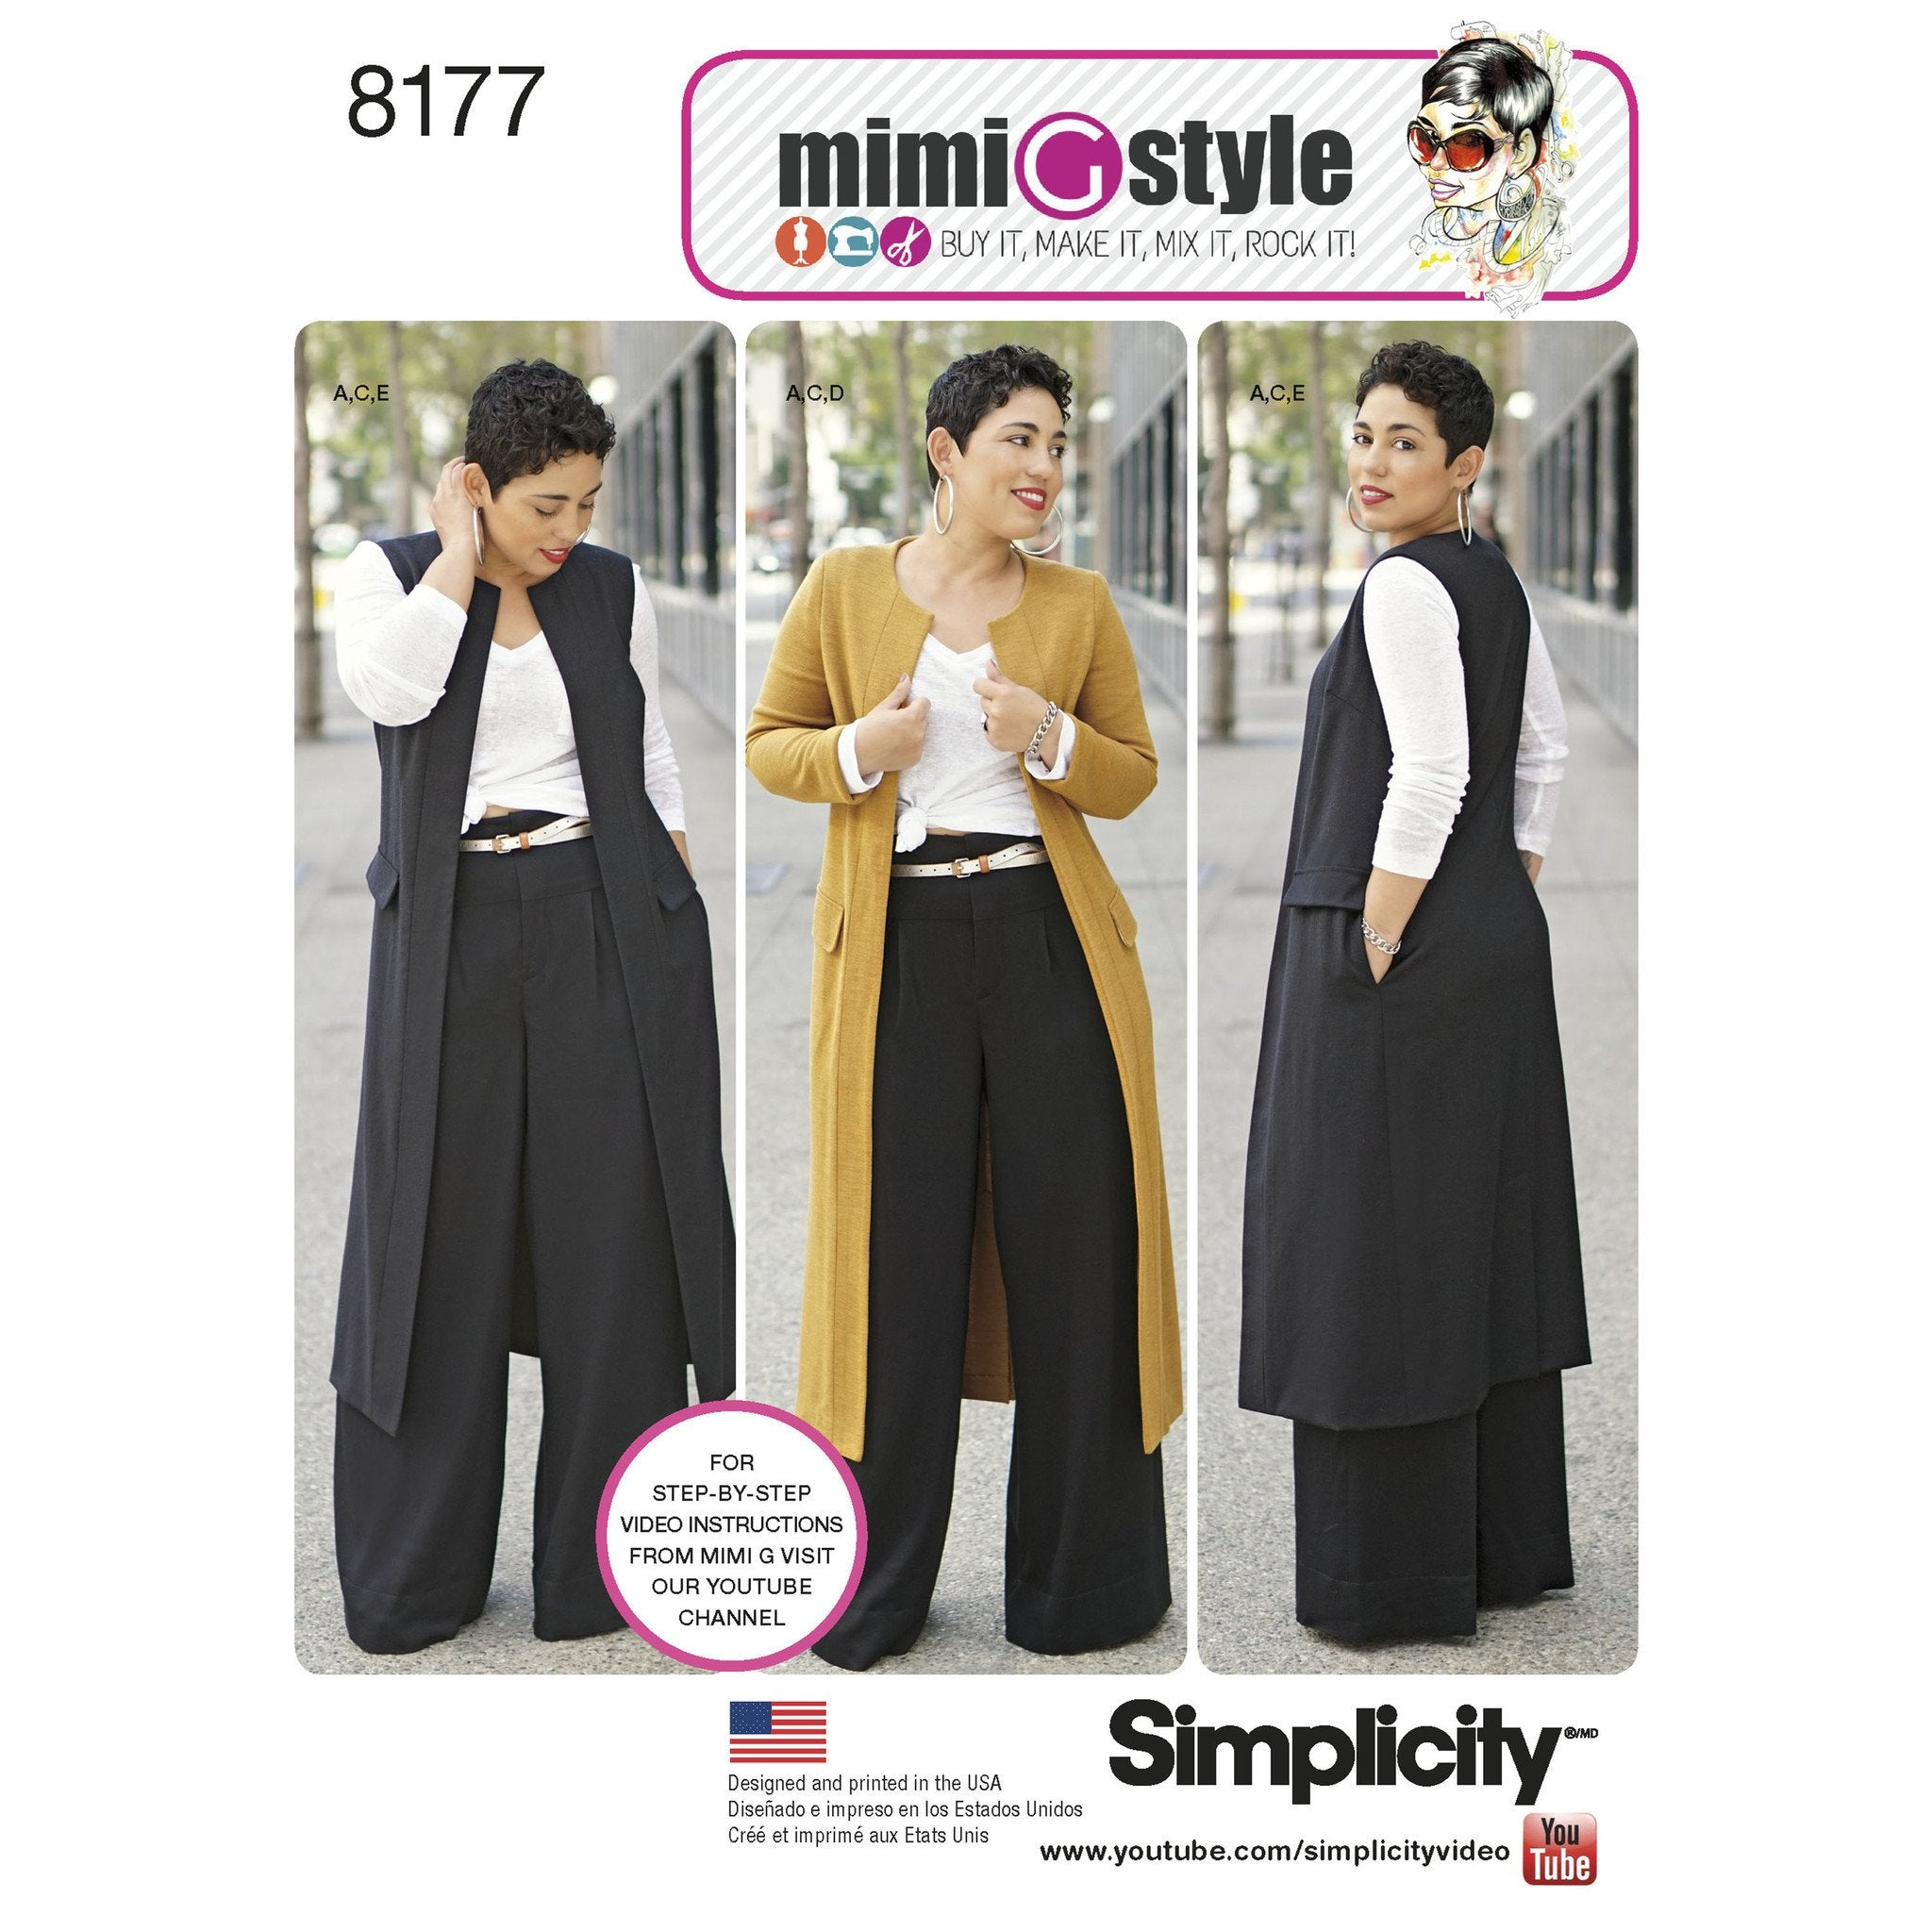 S8177 Mimi G Style Trouser, Coat or Vest, and Knit Top for Miss and Plus Sizes